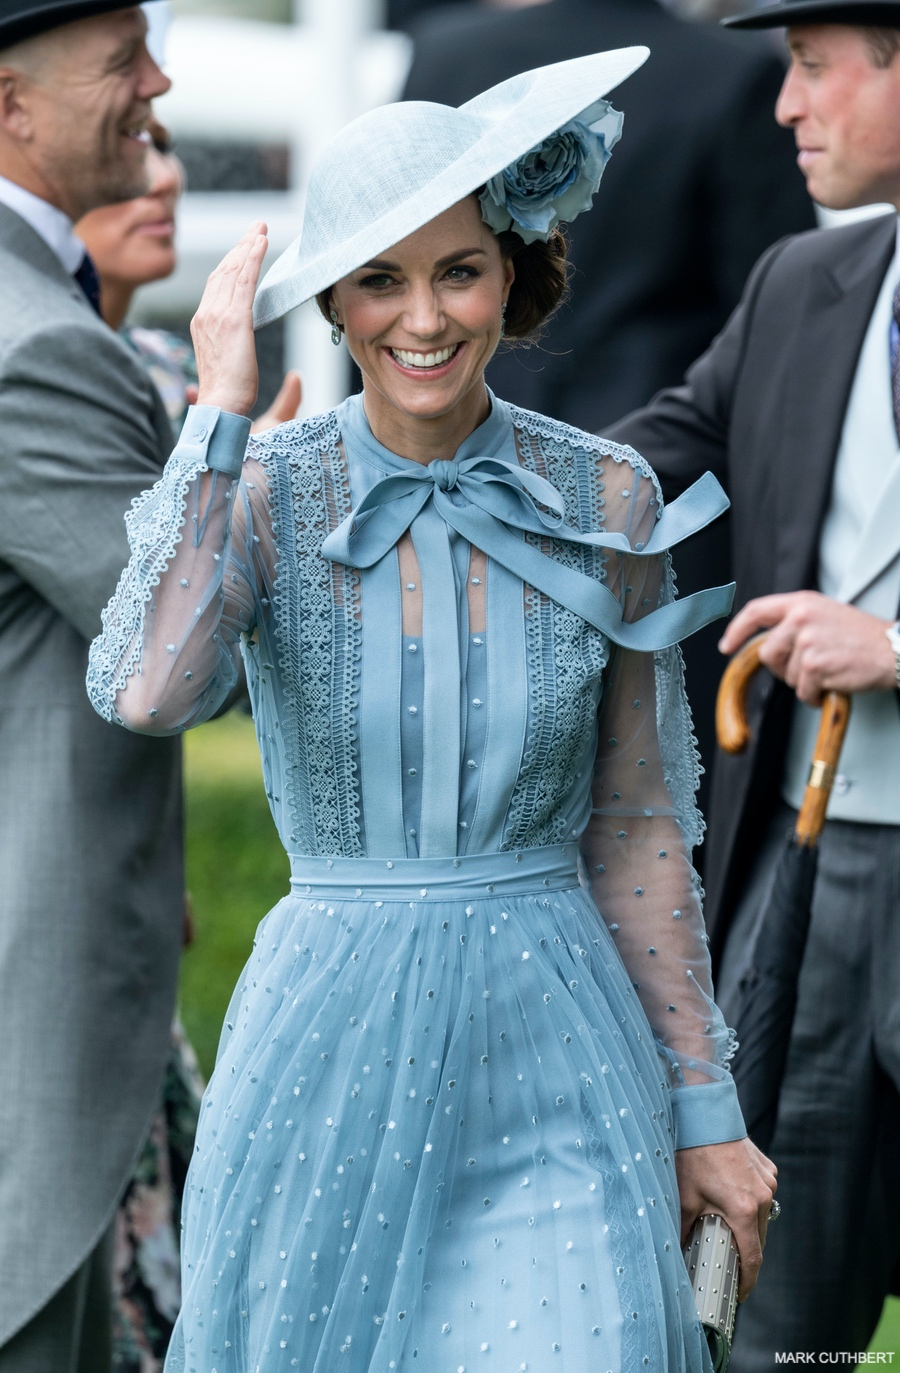 Kate Middleton wears blue ensemble at Royal Ascot 2019.  The Duchess appears slightly windswept as the bow on her dress blows in the wind.